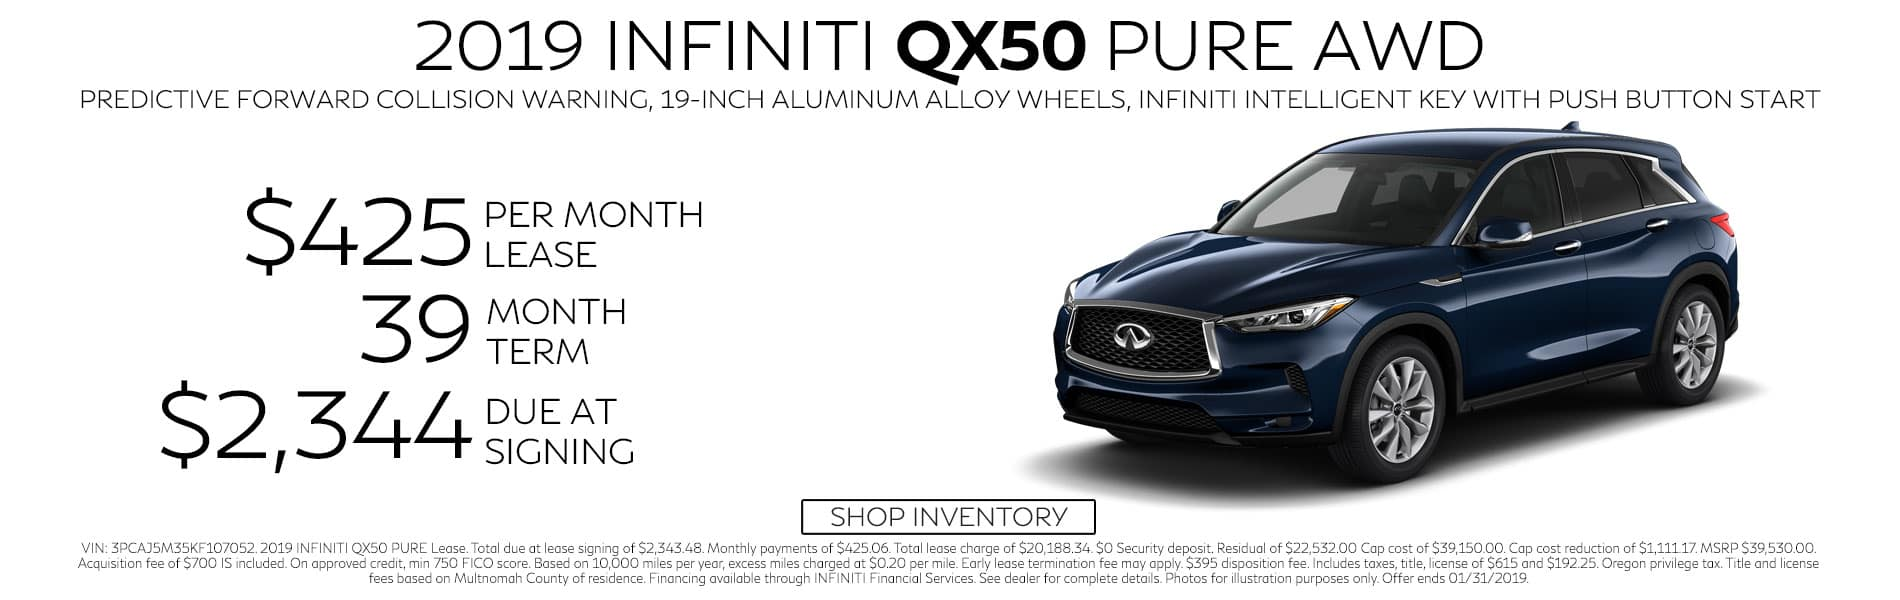 Lease a 2019 QX50 PURE AWD for $429 per month with $2,344 due at signing